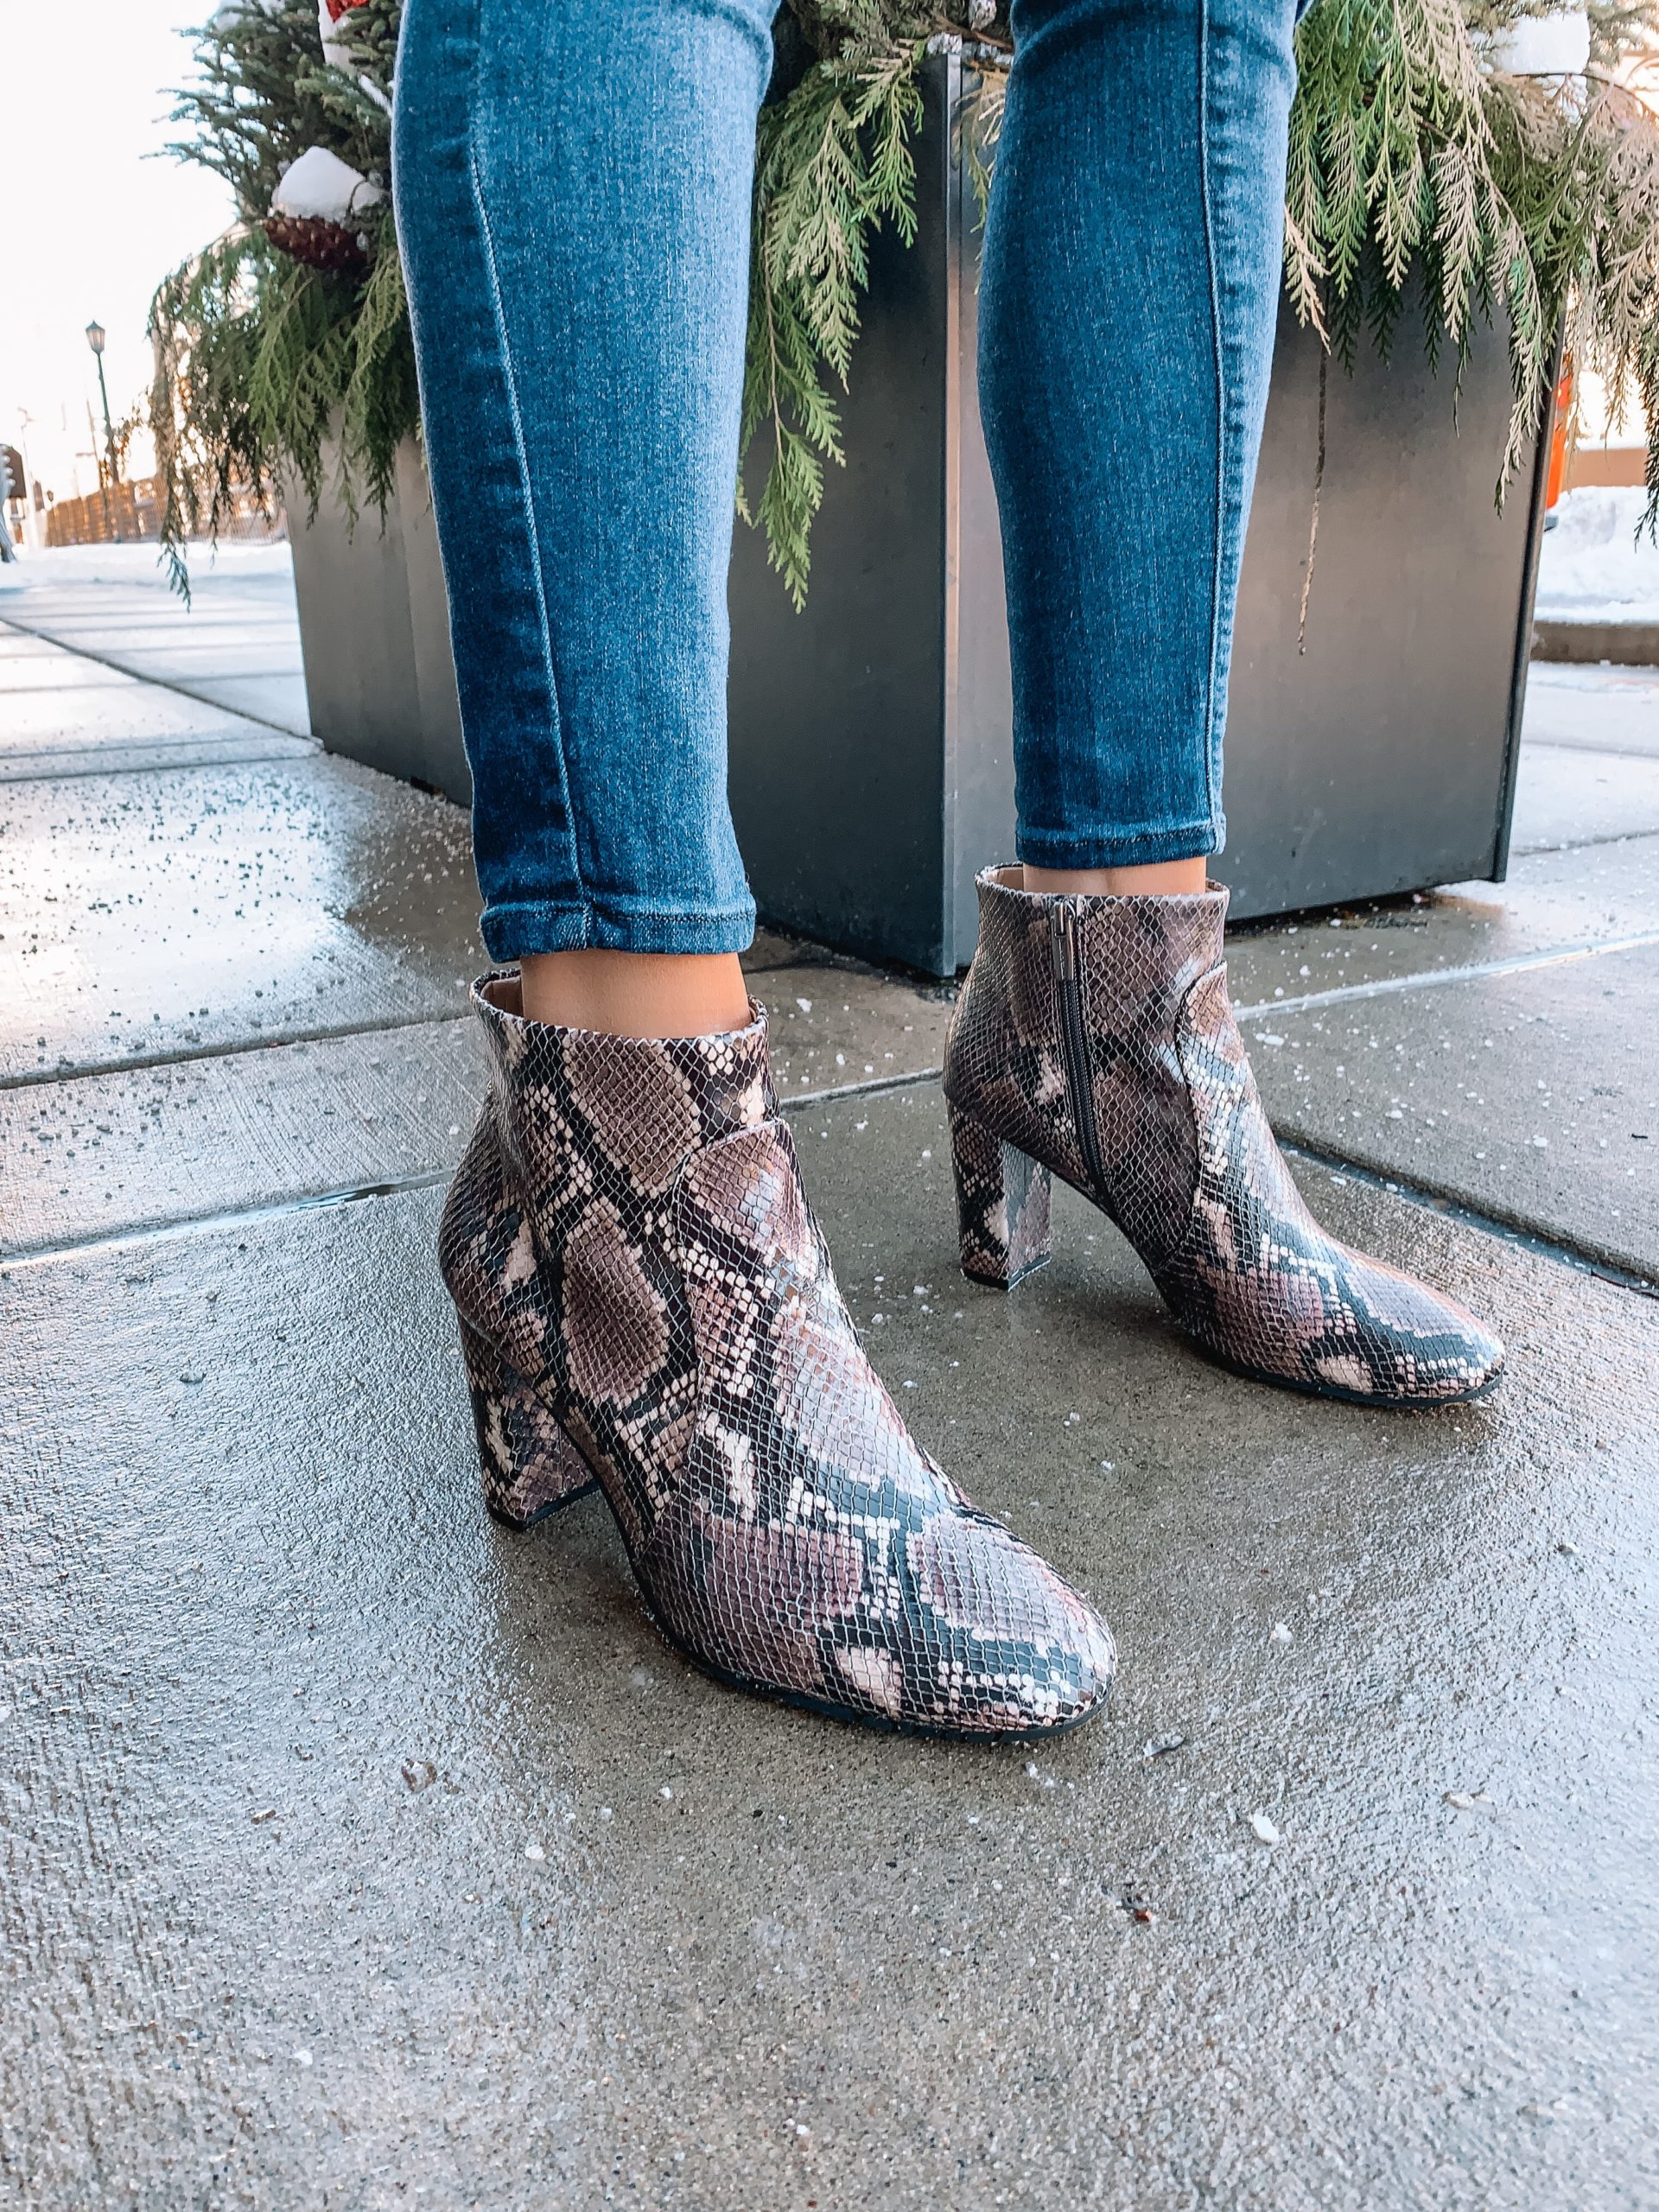 Vince Camuto stylish booties, winter outfit, sanstan snakeskin boots,